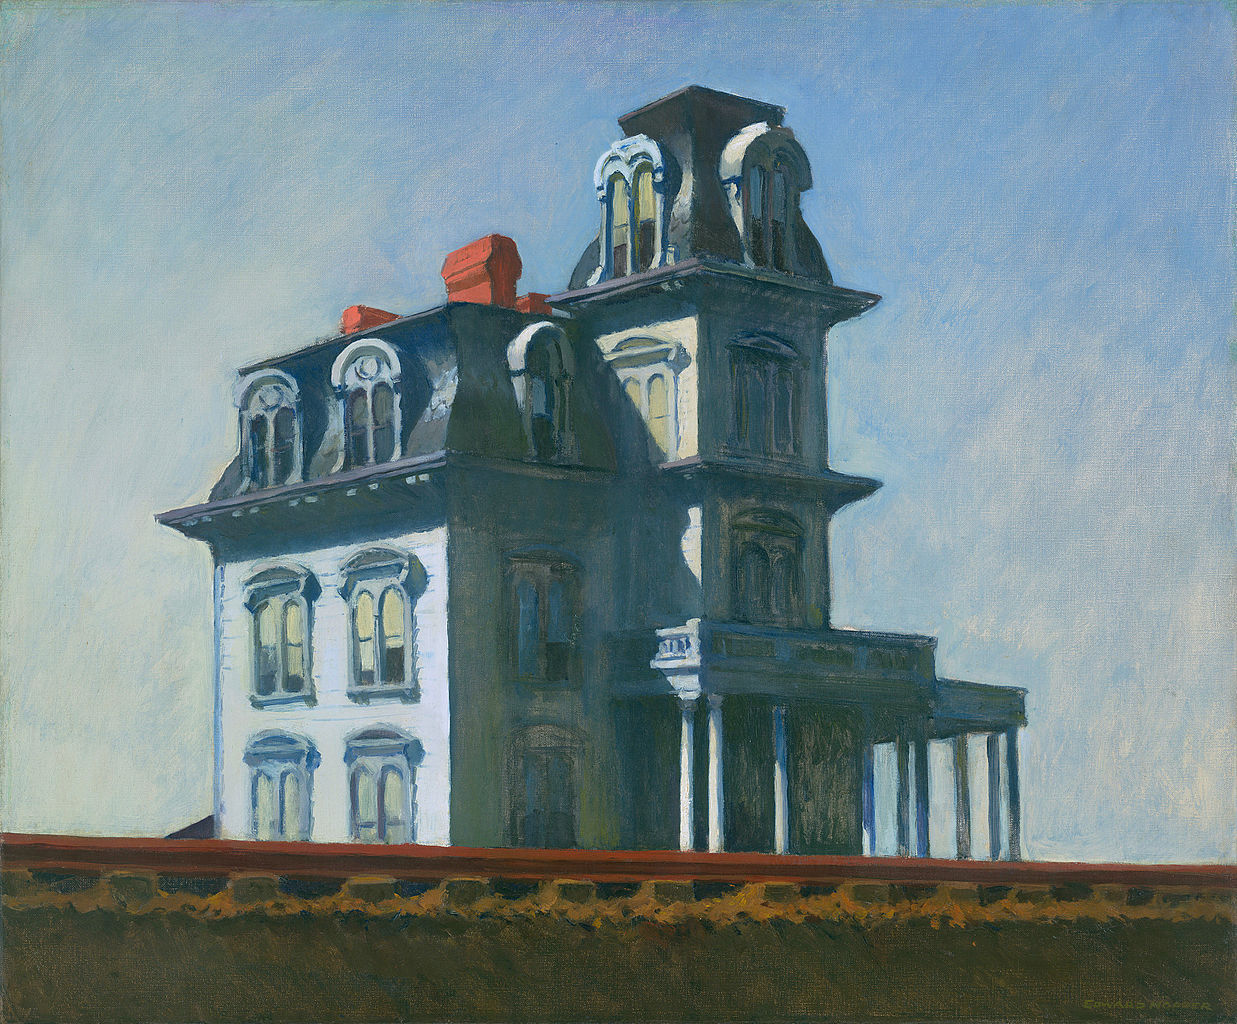 The House by the Railroad by Edward Hopper 1925 | © WikiCommons